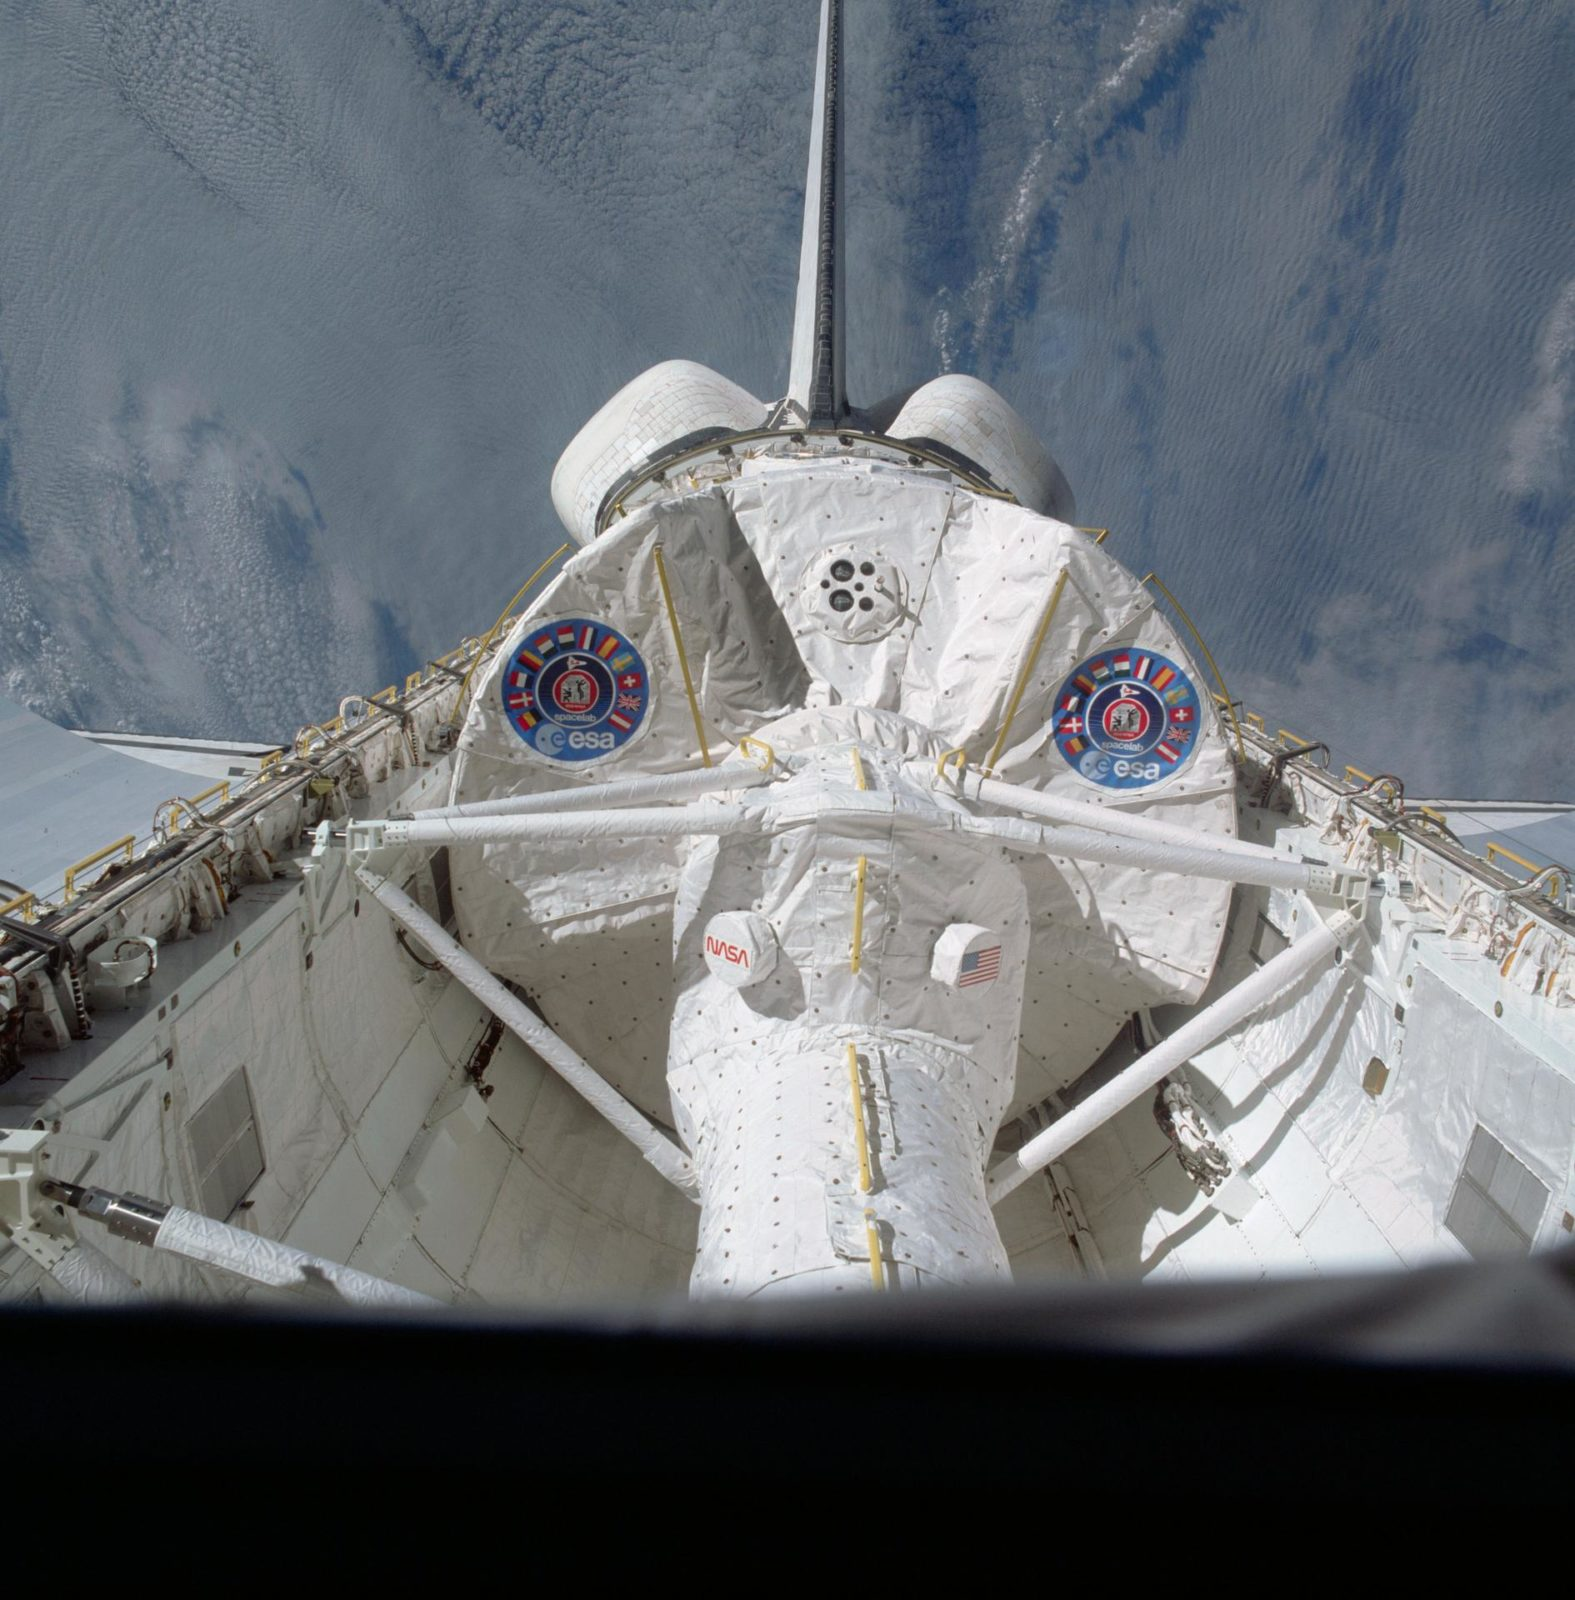 View of the Spacelab module in the payload bay of the Columbia during STS-9